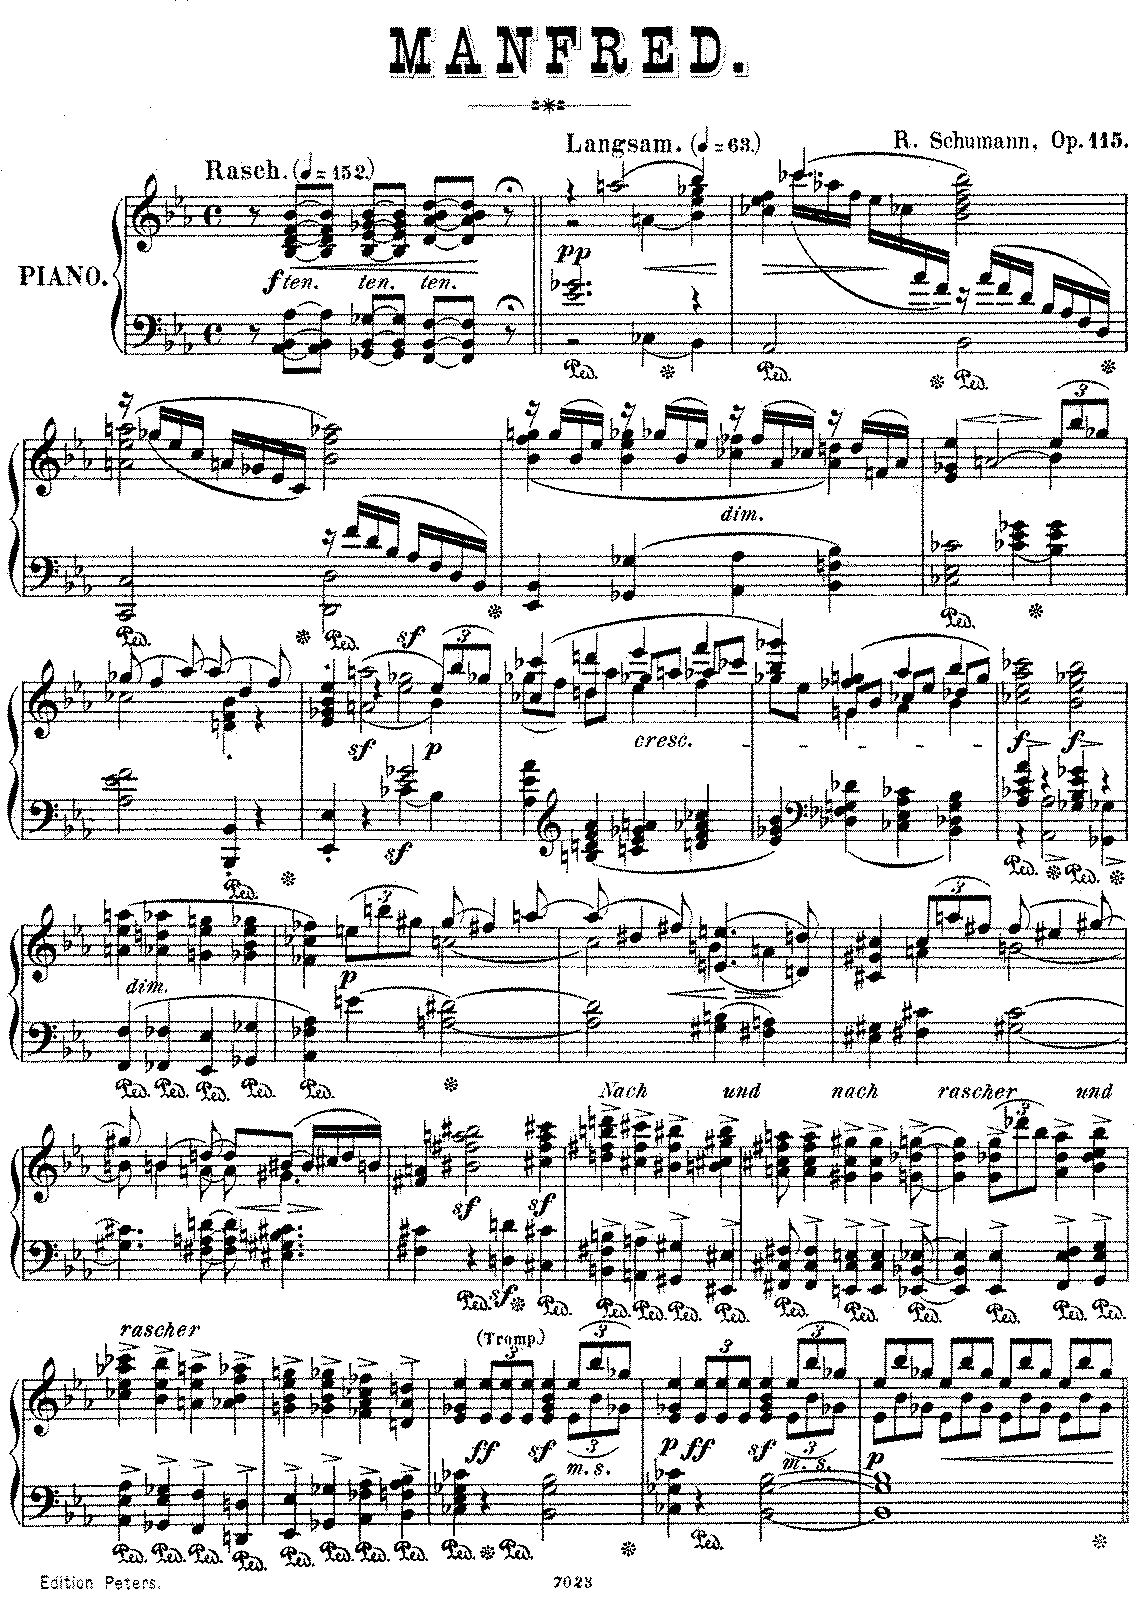 Schumann - Manred - Peters.pdf